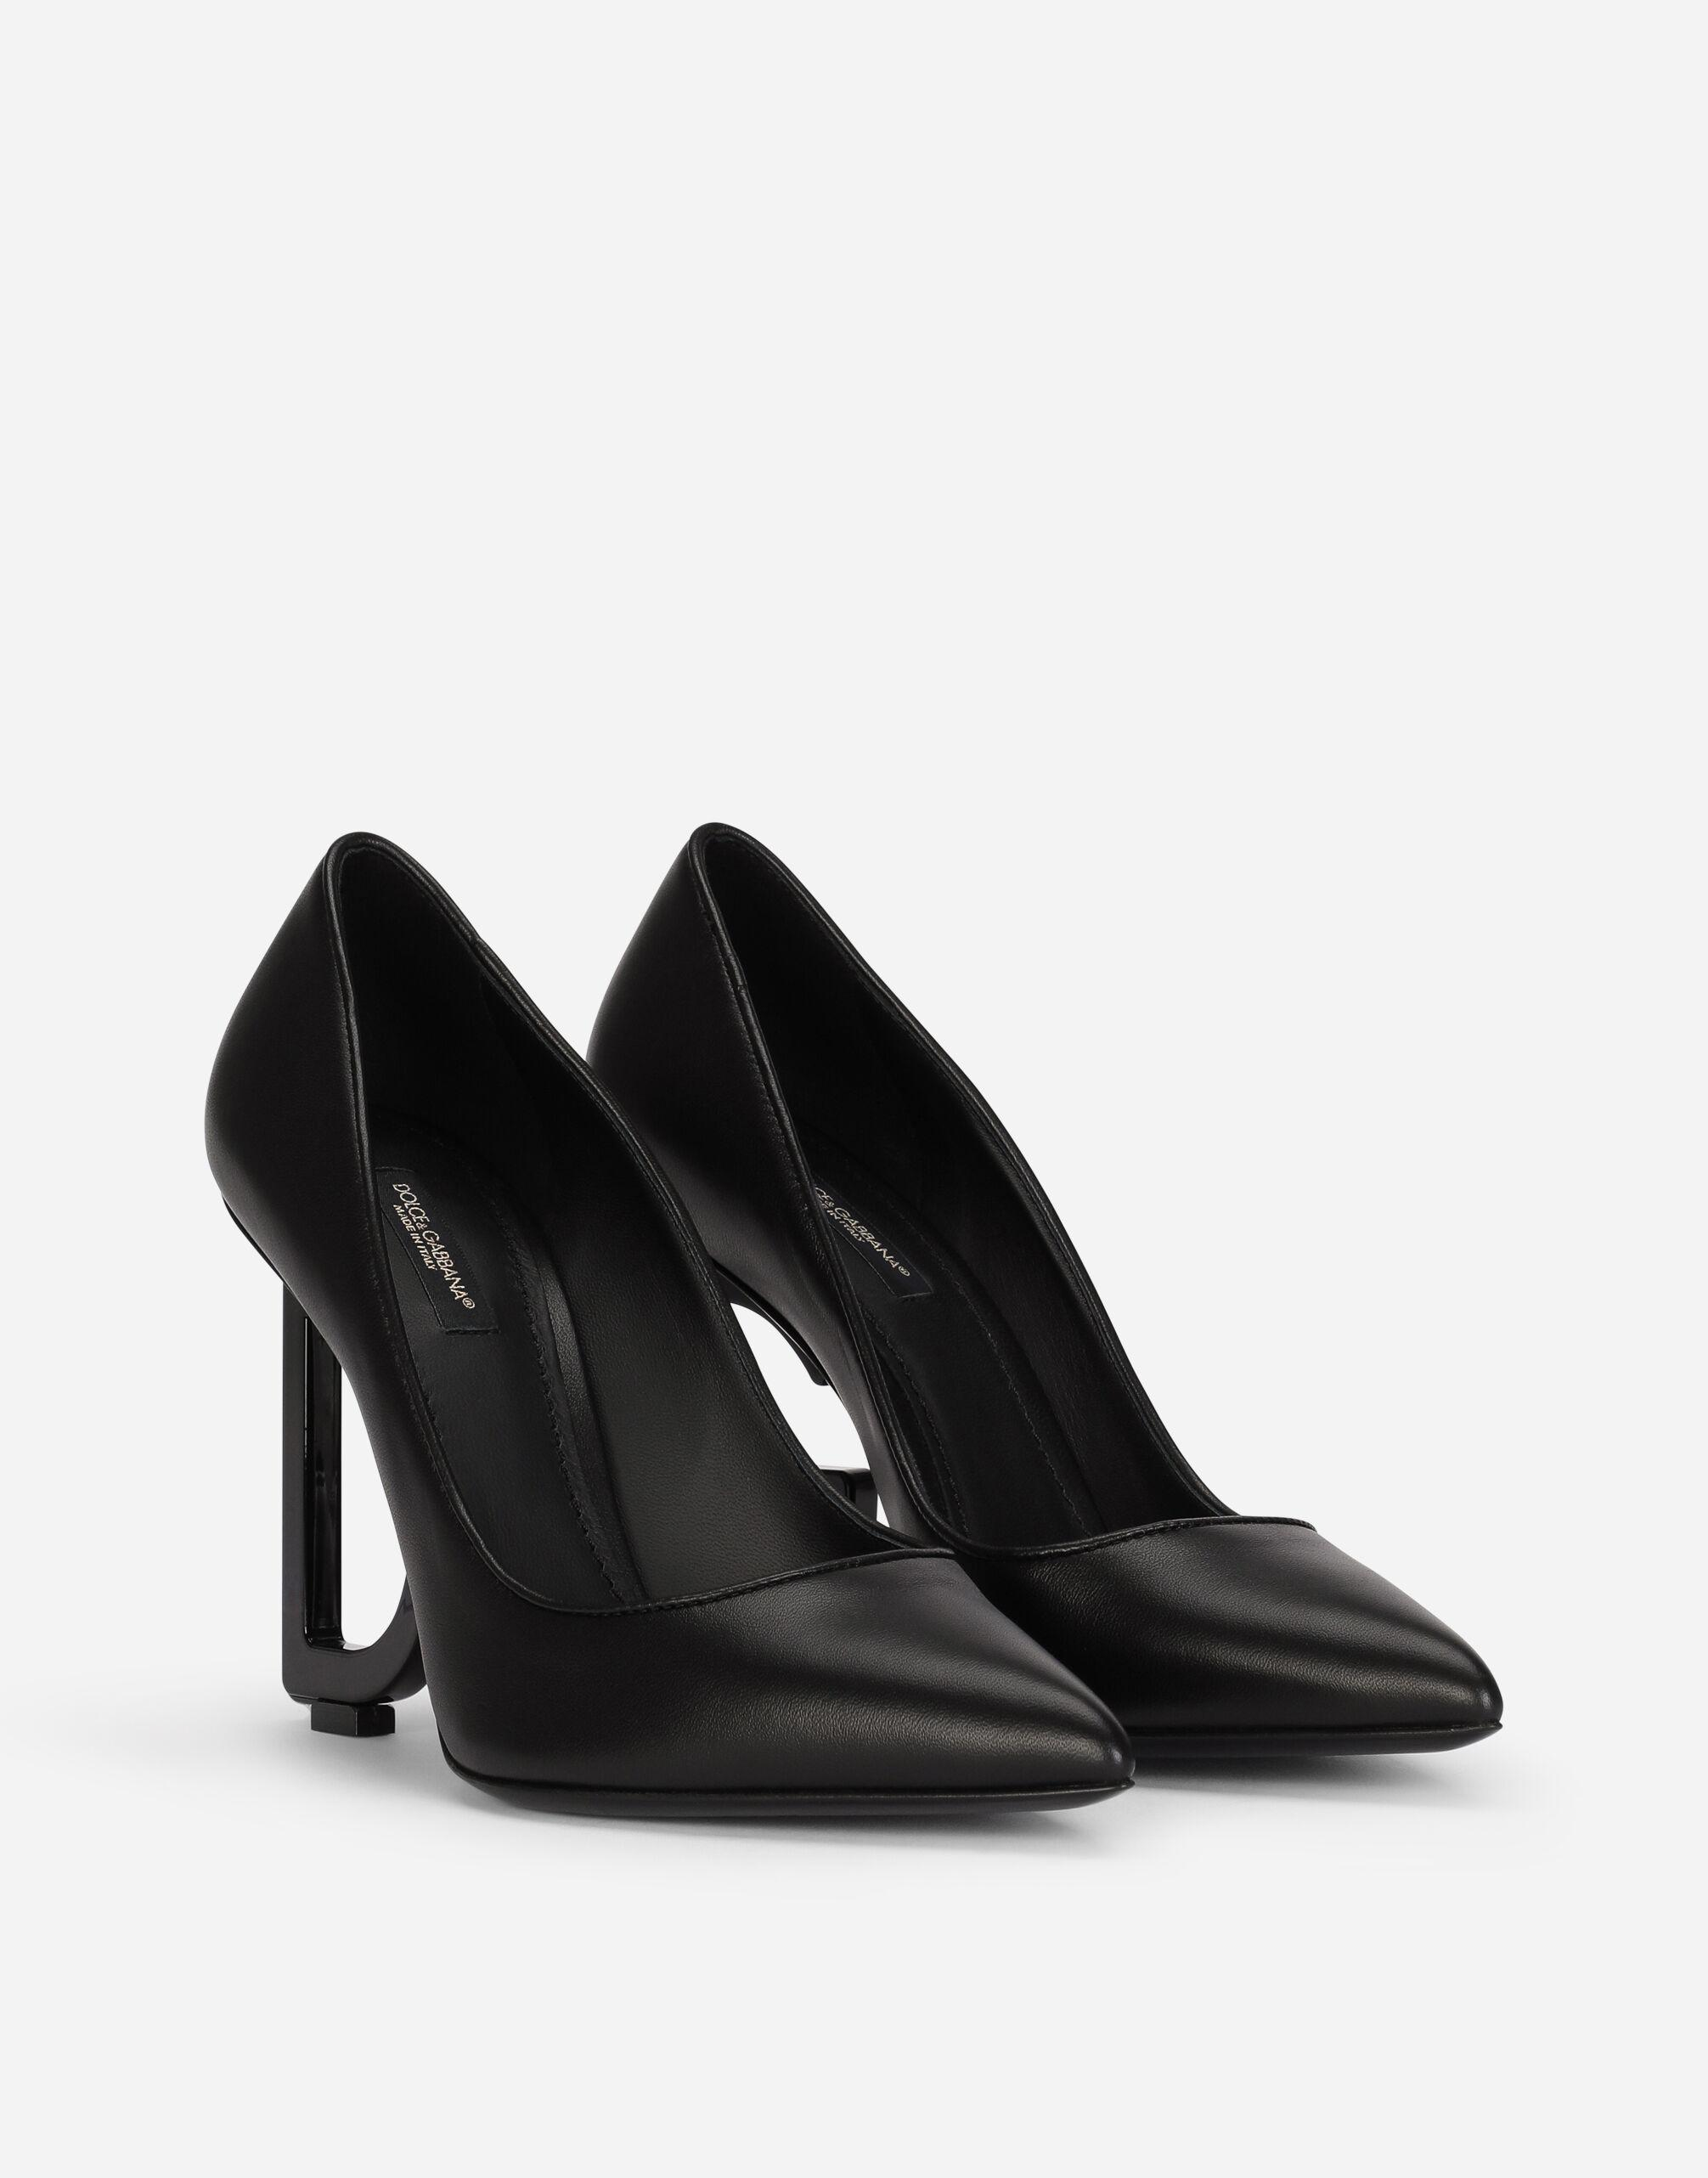 Nappa leather pumps with DG heel 1